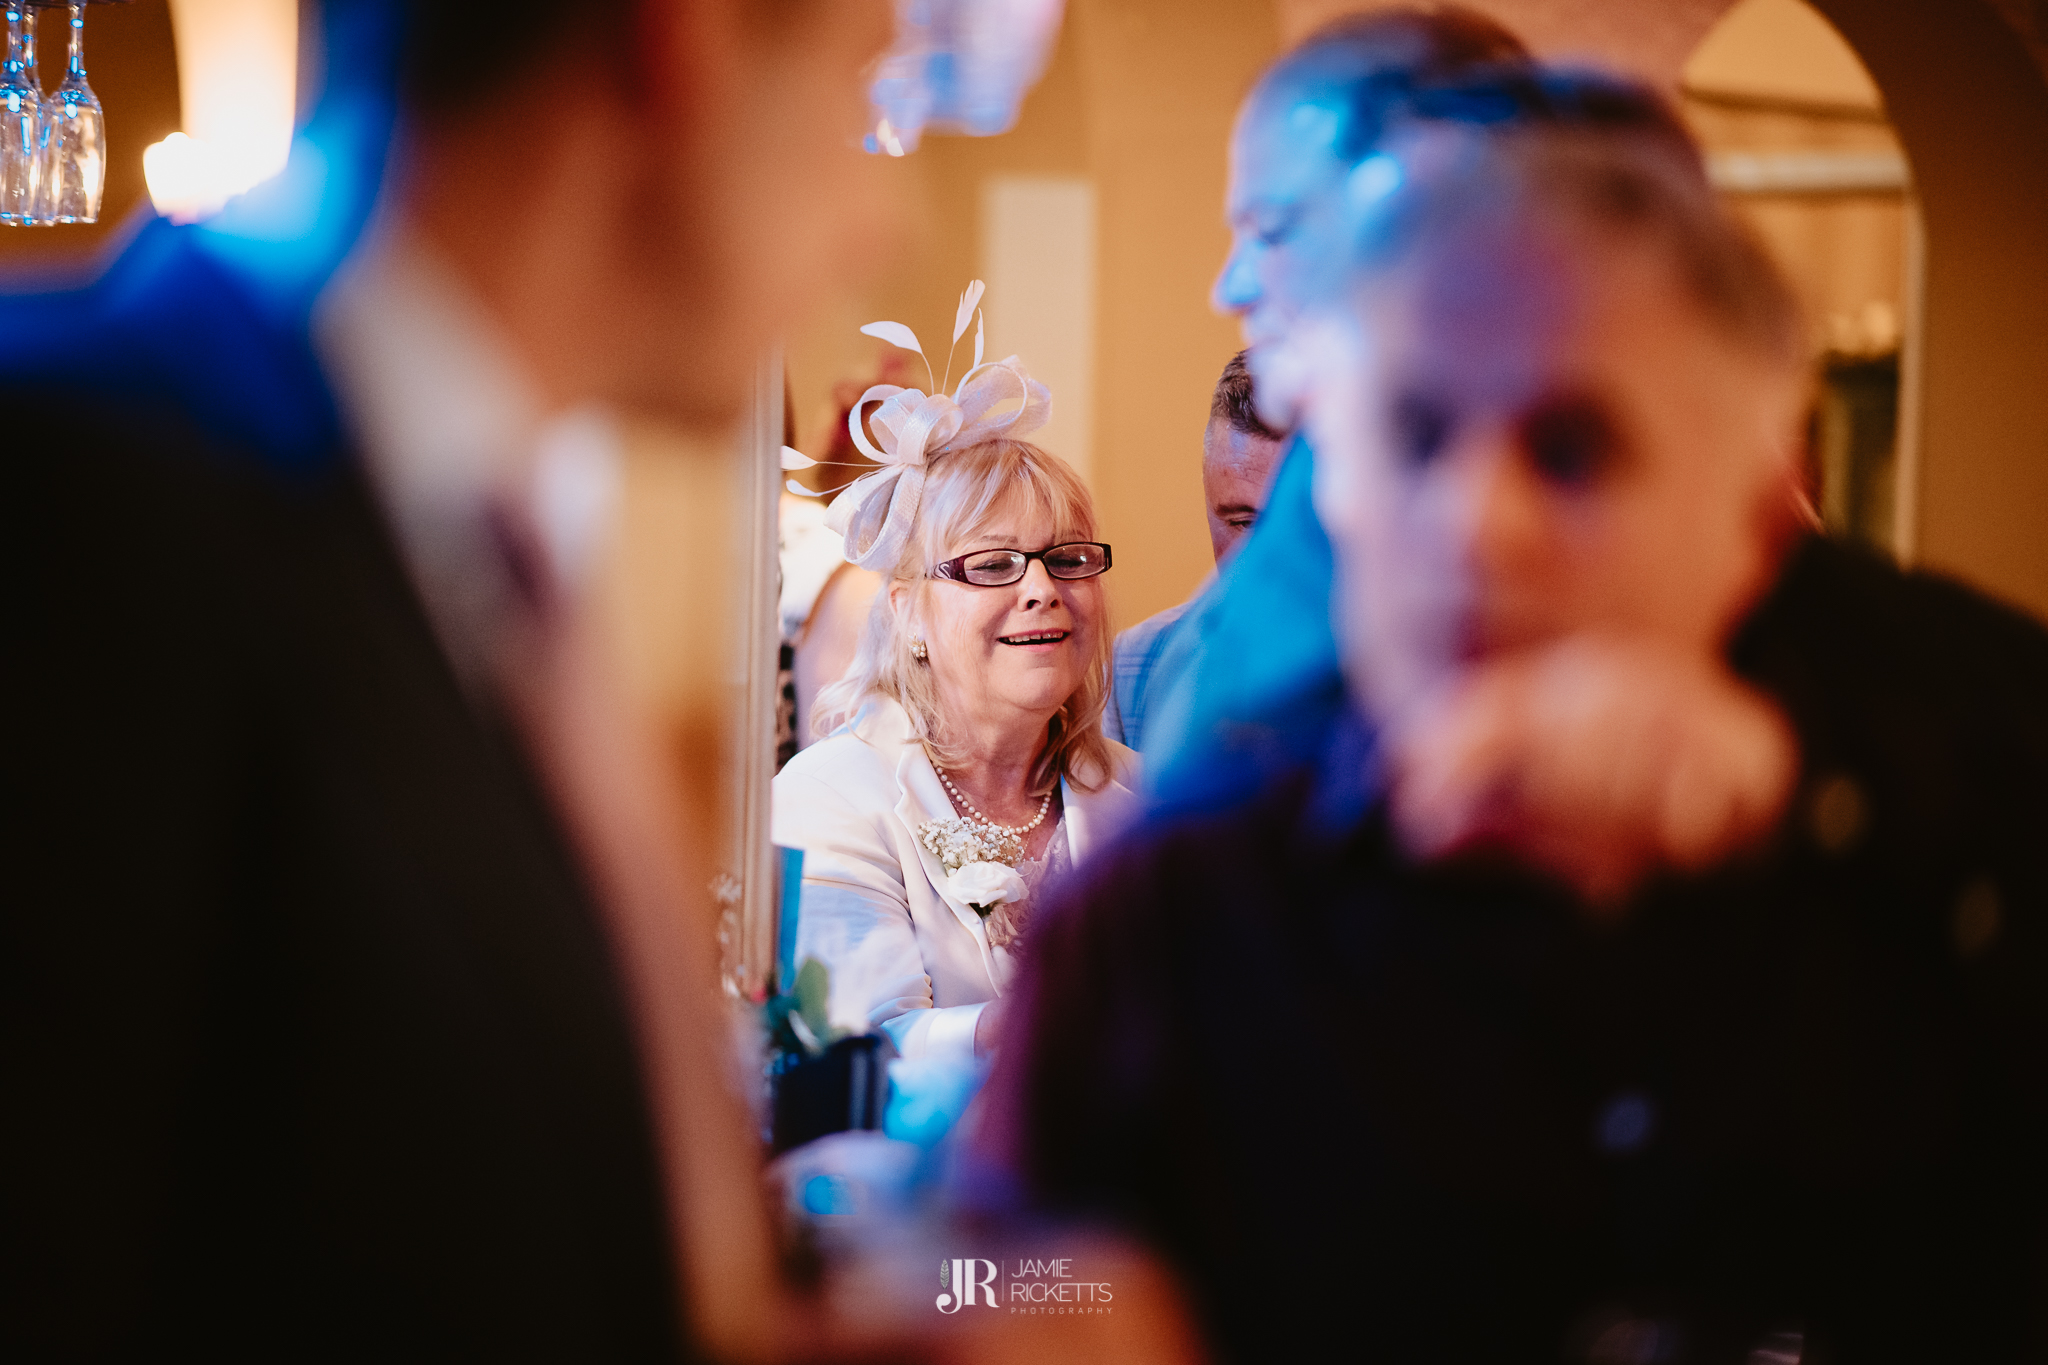 Wroxeter-Hotel-Wedding-Photography-In-Shropshire-By-Shropshire-Wedding-Photographer-Jamie-Ricketts-131.JPG